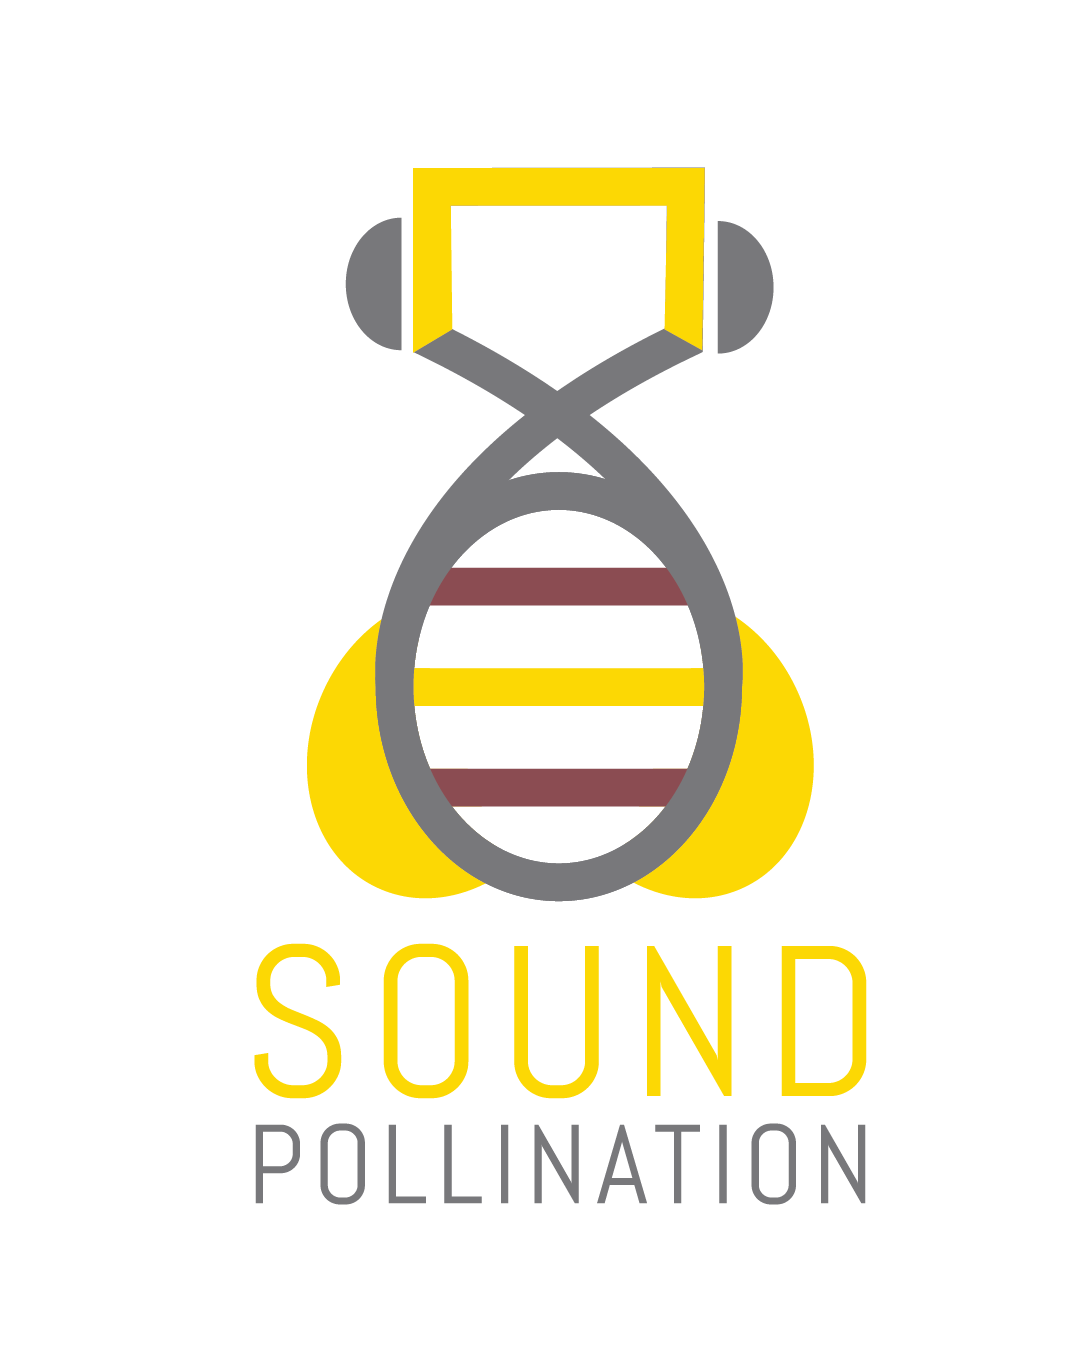 soundpollination_color-02.png